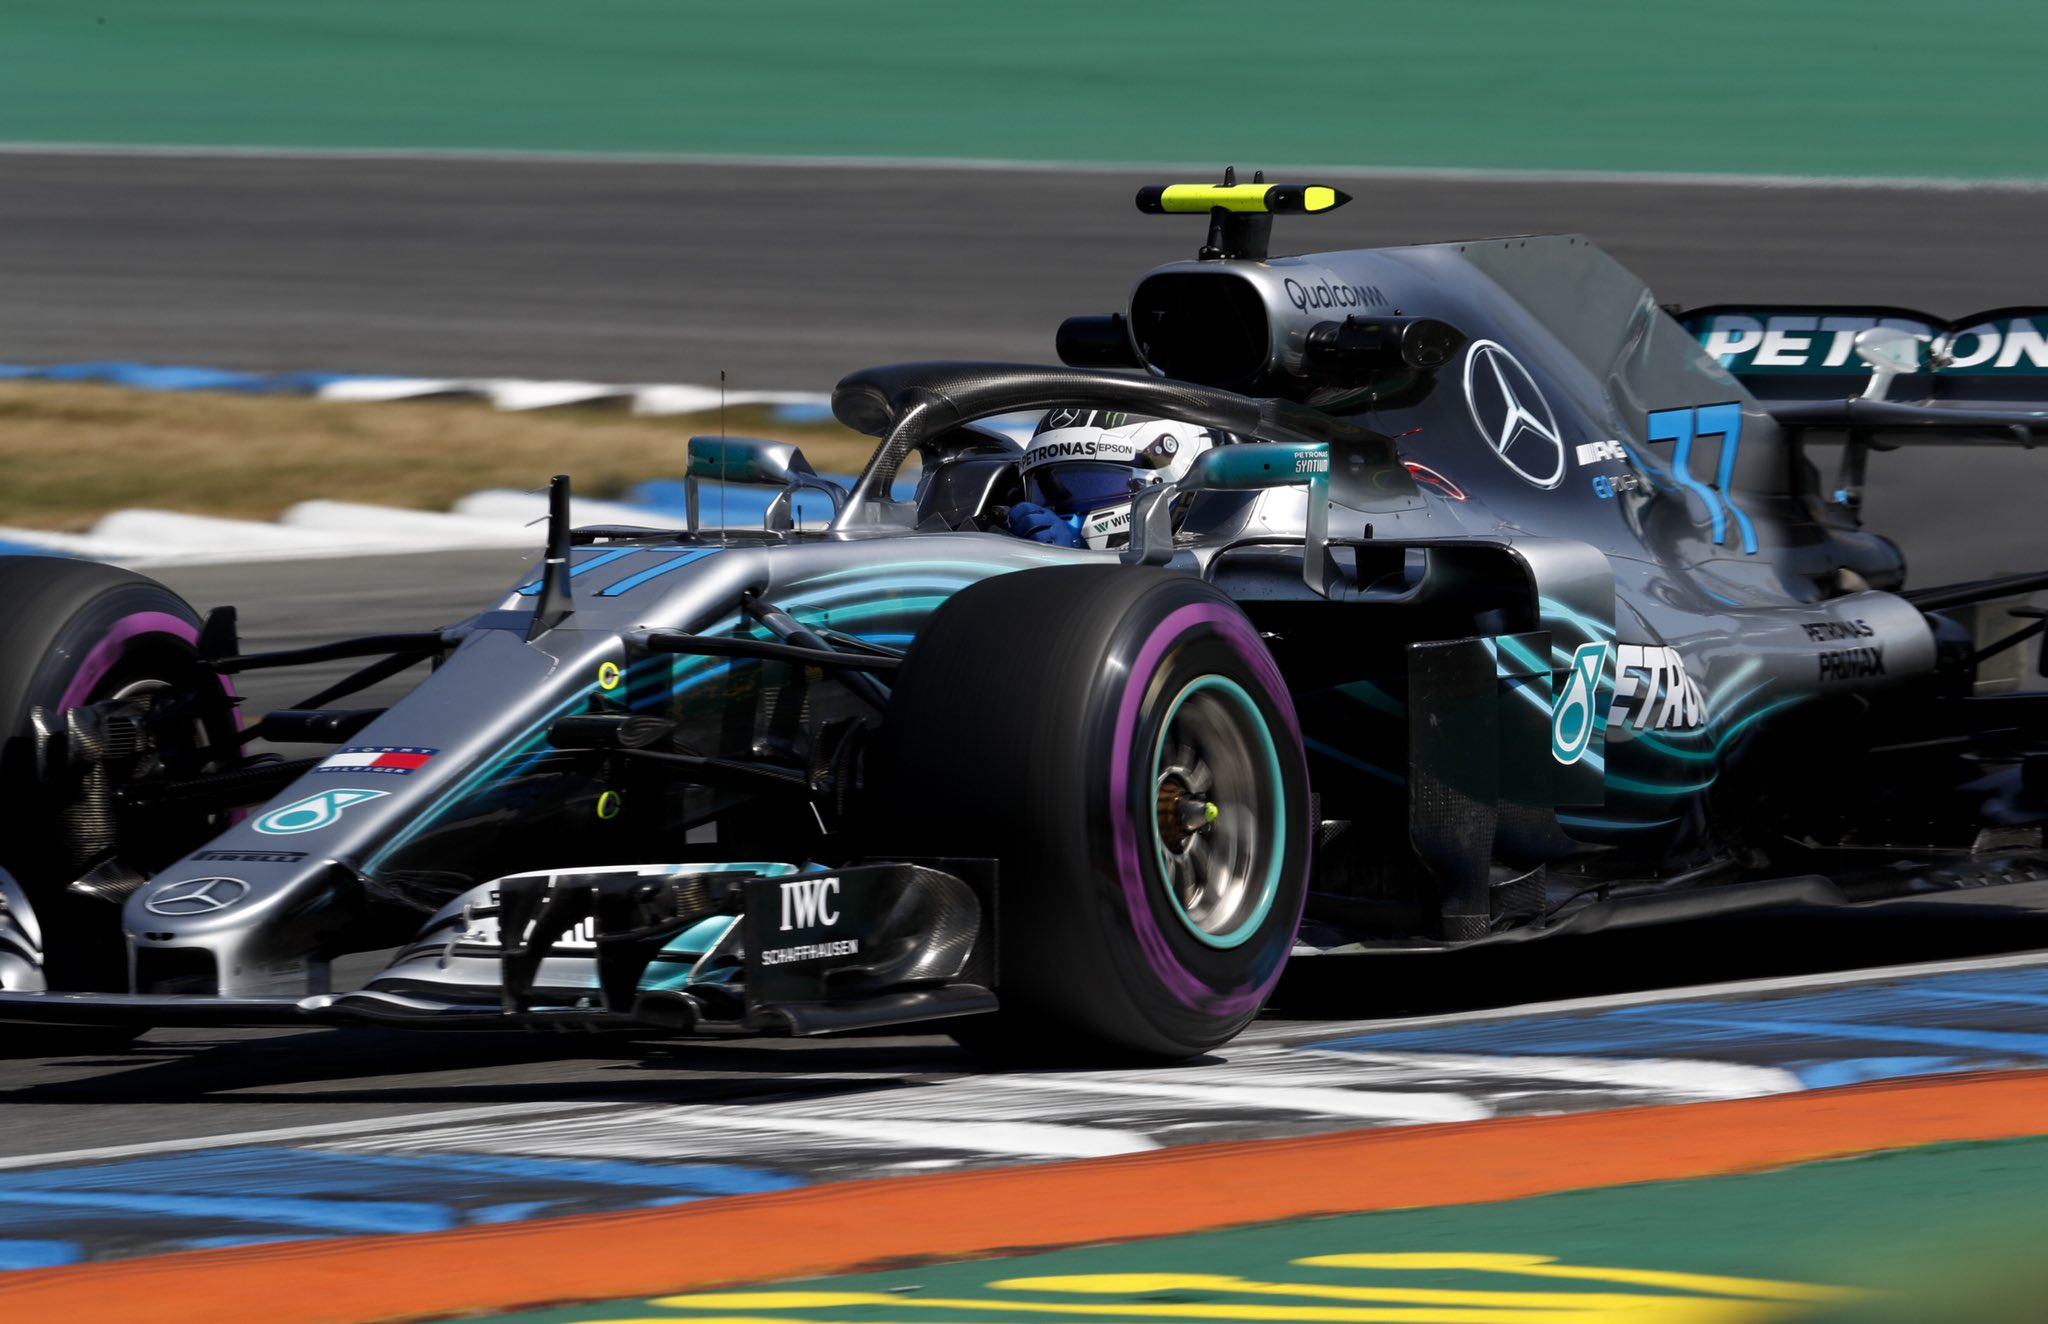 �� First hot laps in from the boys and it's P2 and P3. Valtteri (Soft) heads Lewis (Medium) ���� #GermanGP https://t.co/LGQhqC59F2